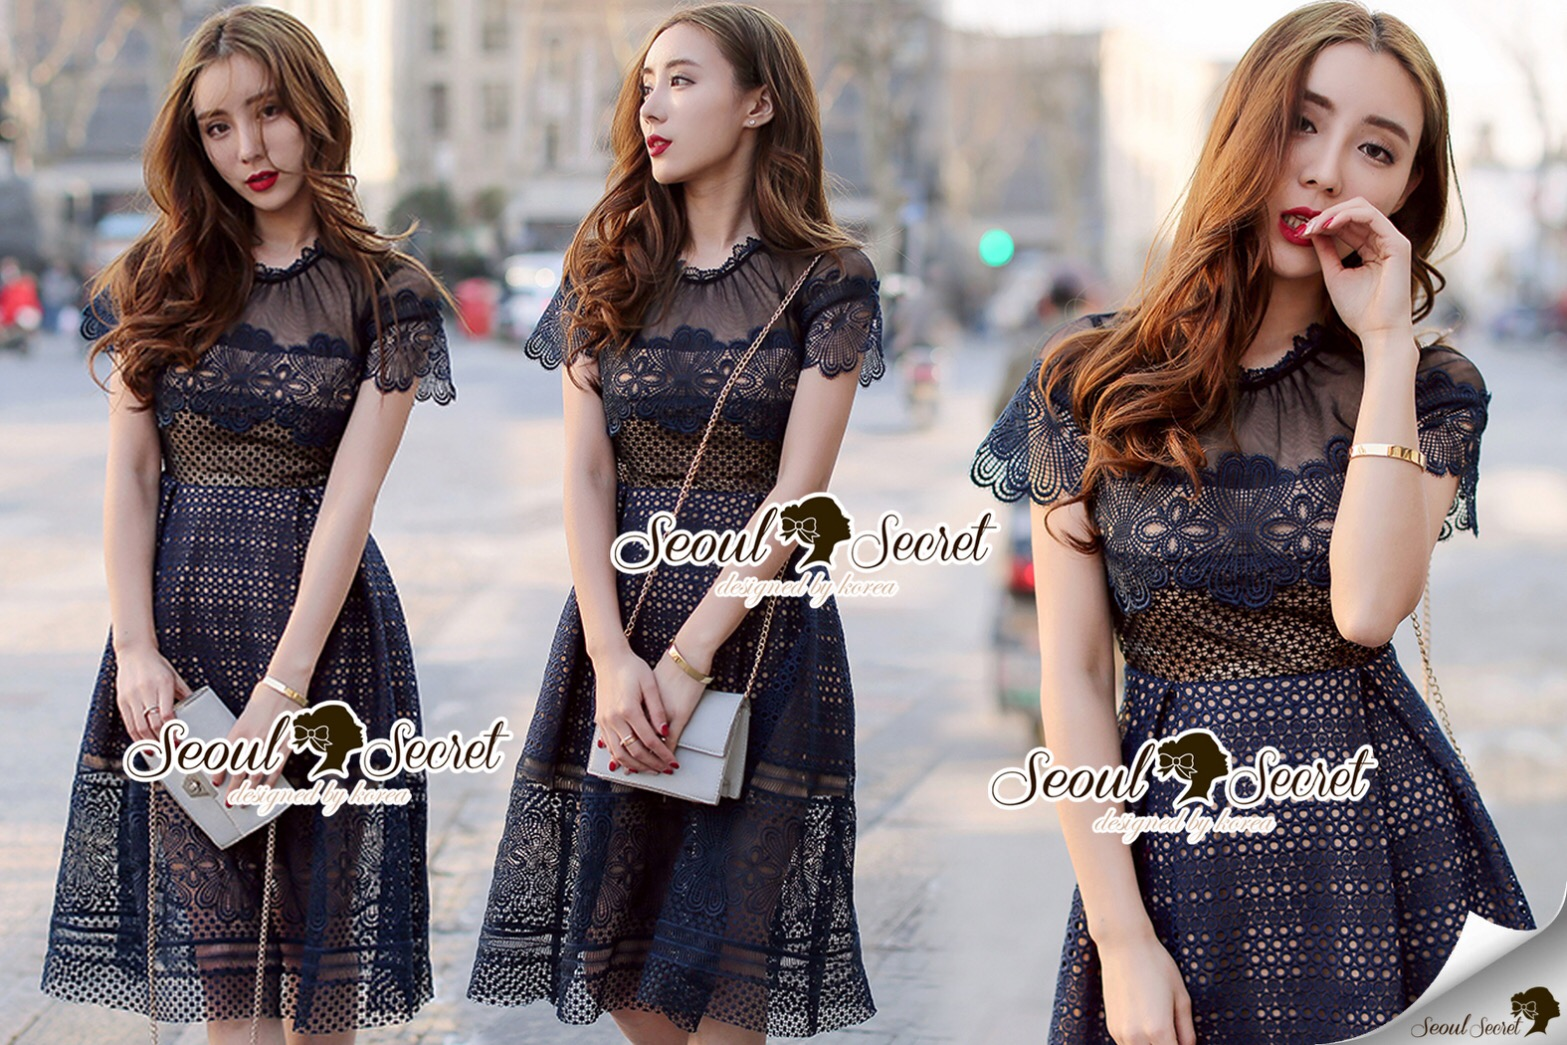 Shop Closet Seoul Secret Say's... Ribbon Lady ddy Belt Foliage Print PlaySuit